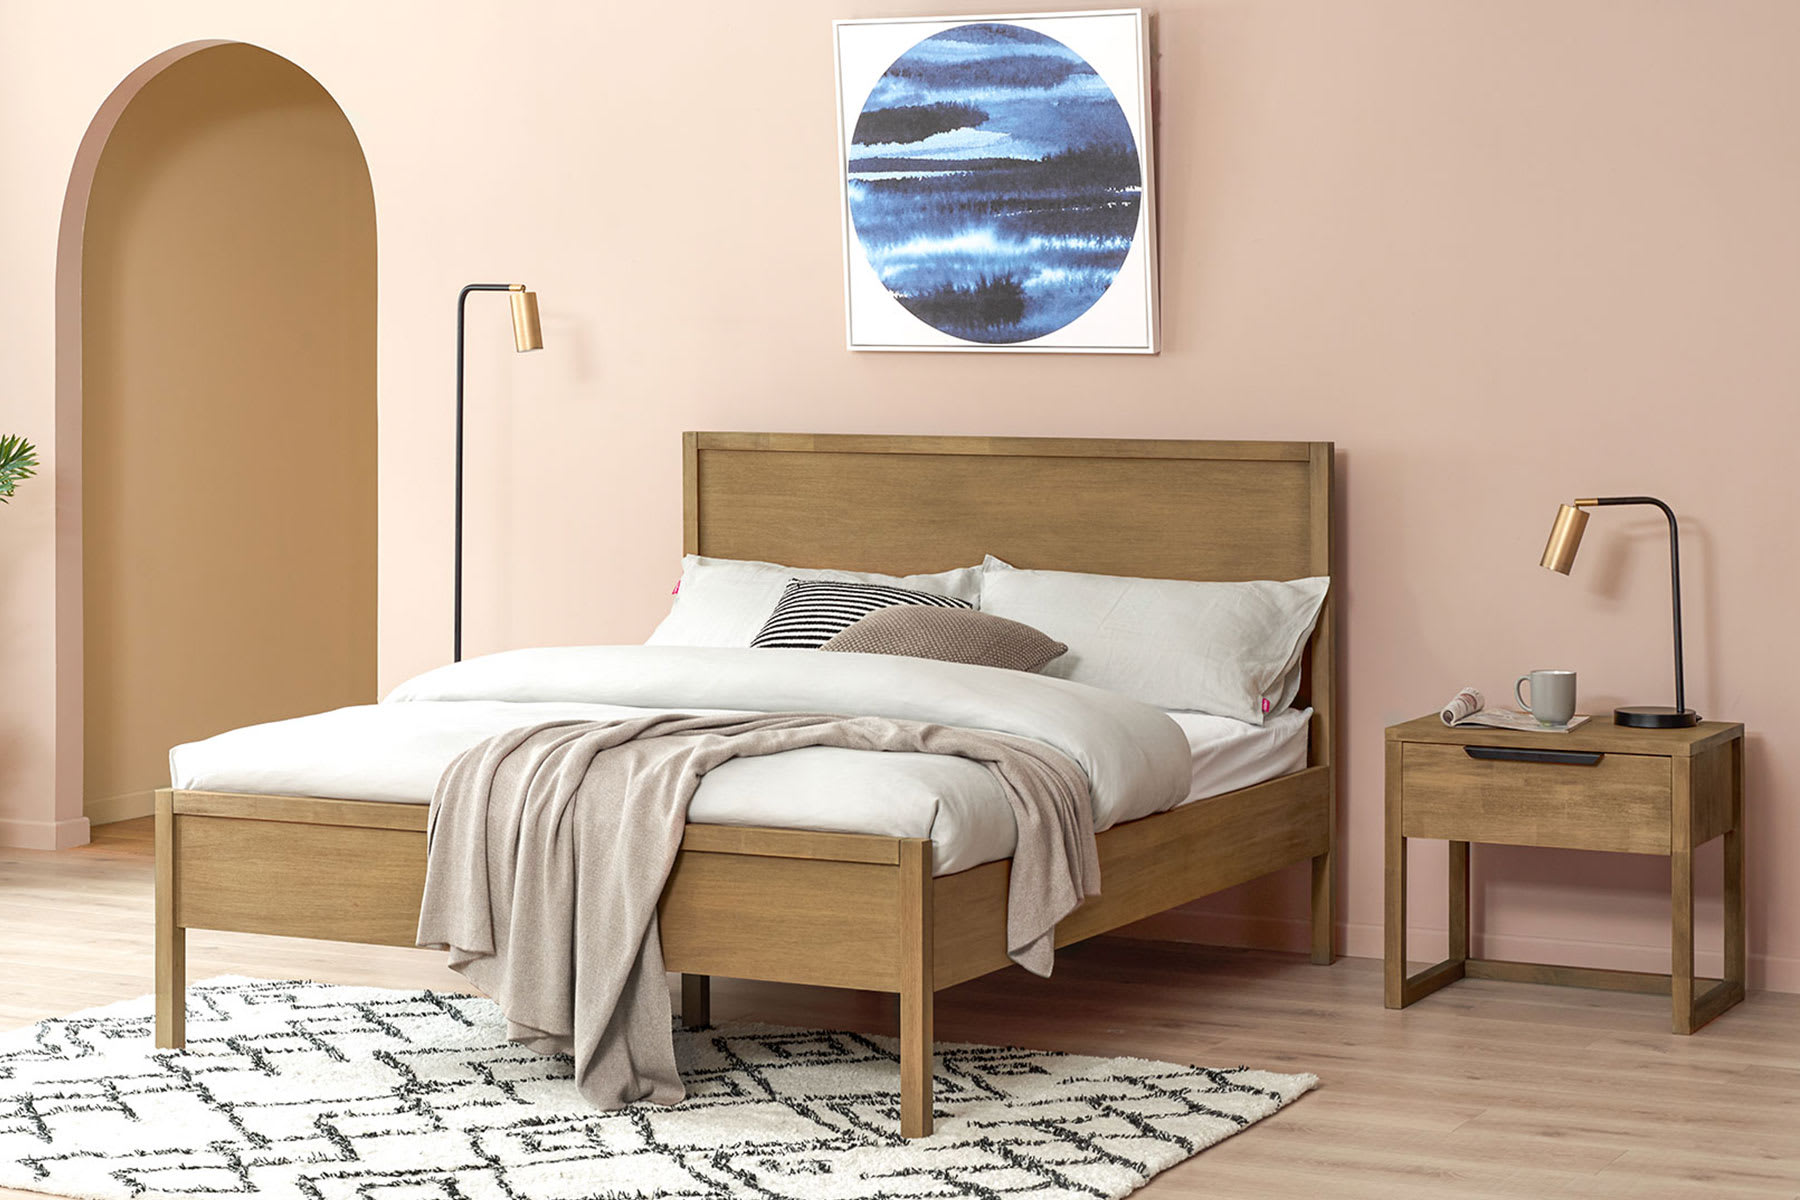 solid mahogany wood bed in pastel bedroom with bedside table and lamp